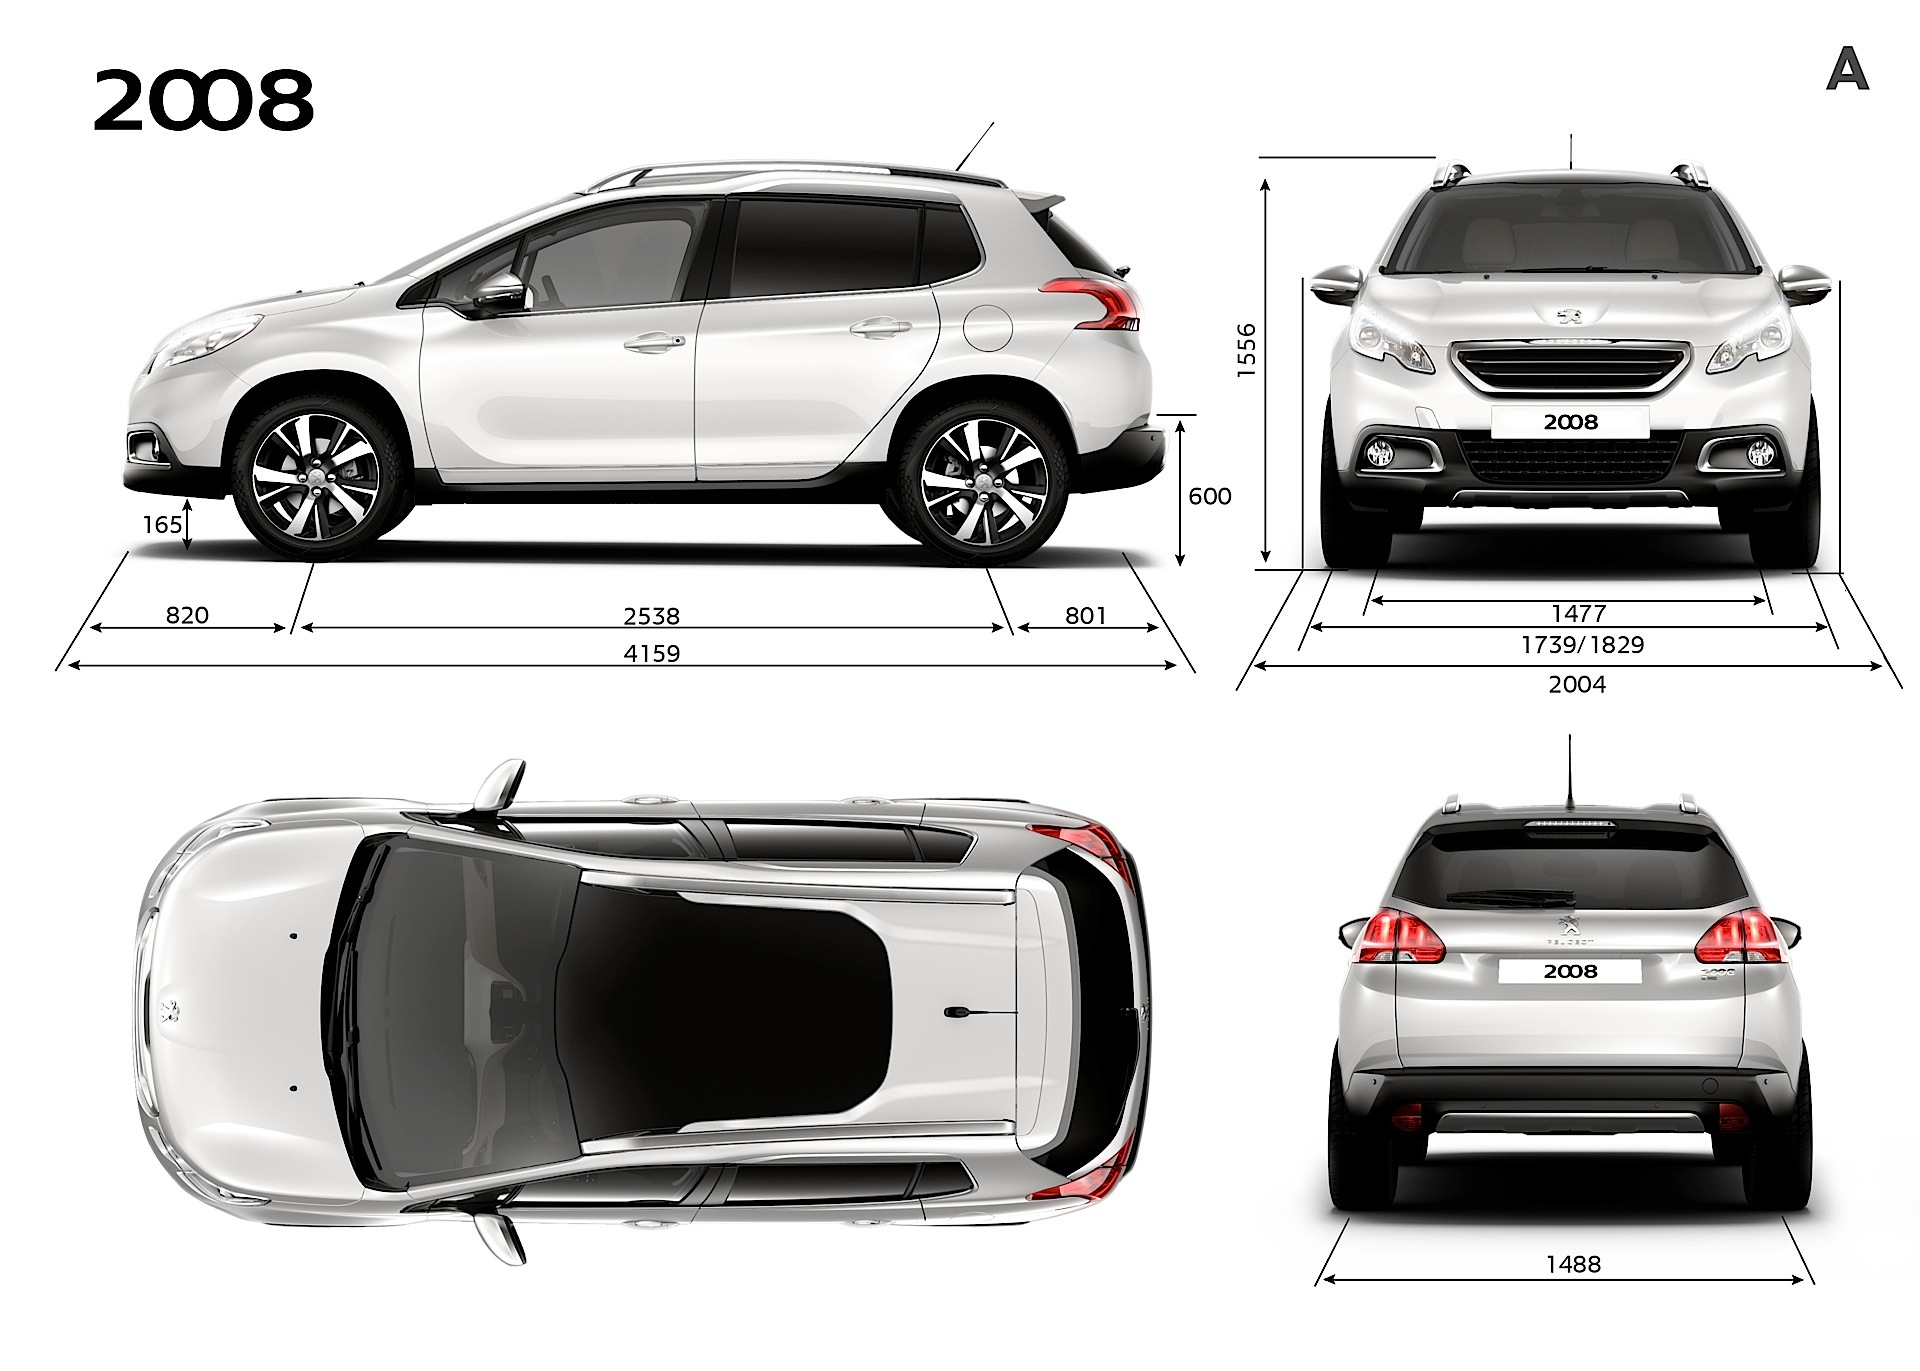 peugeot 2008 specs photos 2013 2014 2015 2016 autoevolution. Black Bedroom Furniture Sets. Home Design Ideas